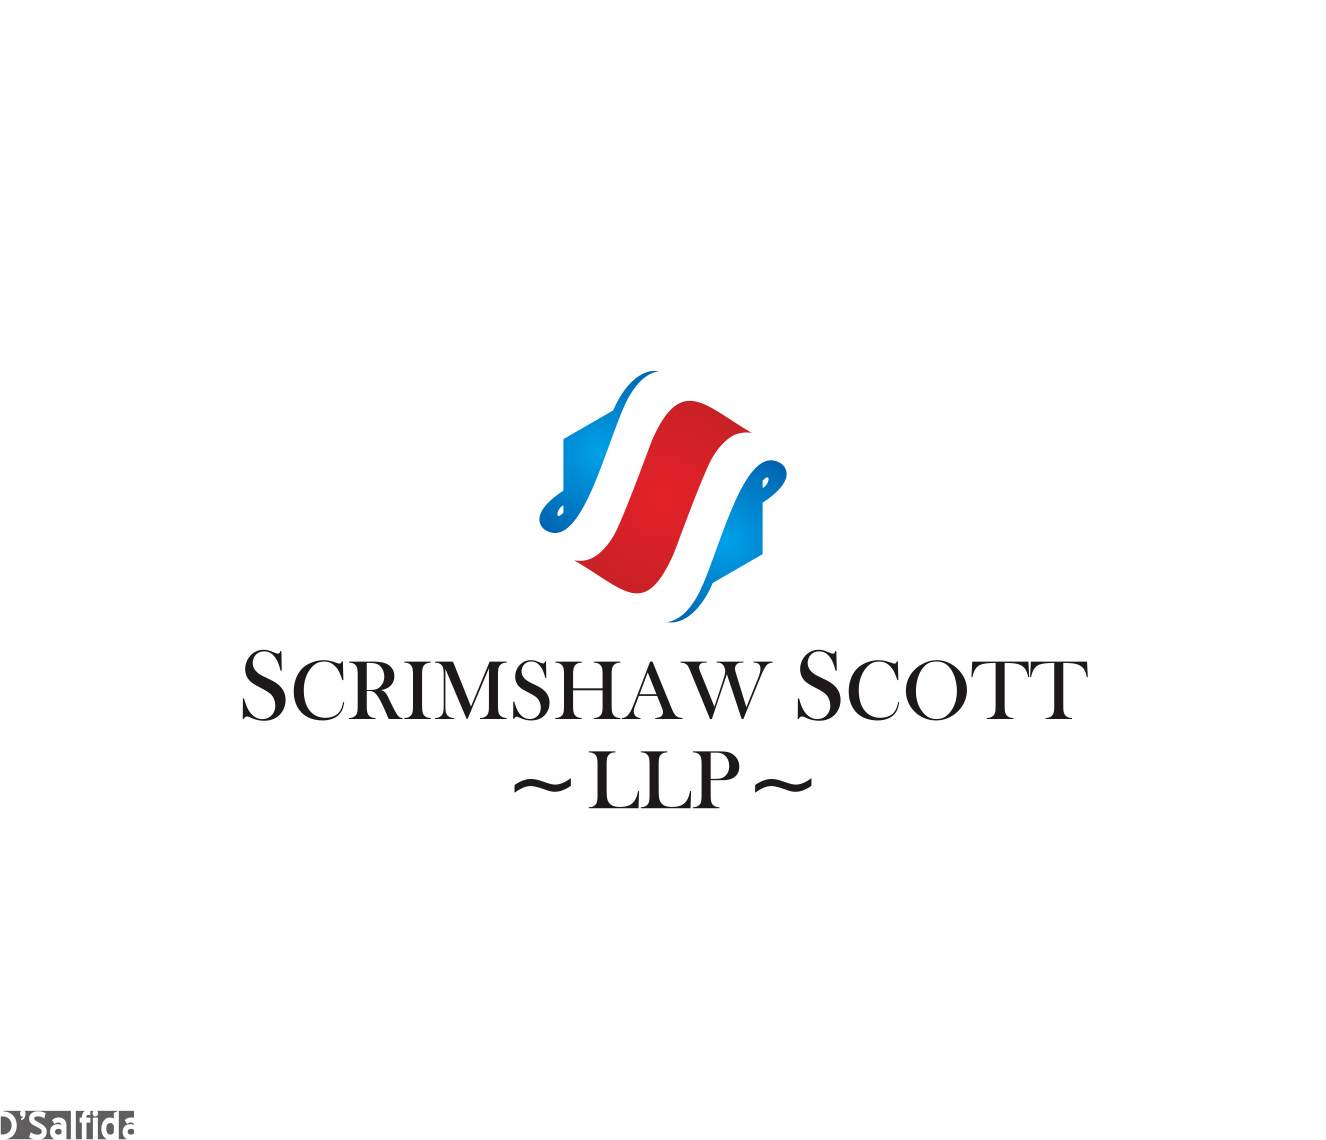 Logo Design by Armada Jamaluddin - Entry No. 112 in the Logo Design Contest Creative Logo Design for Scrimshaw Scott LLP.